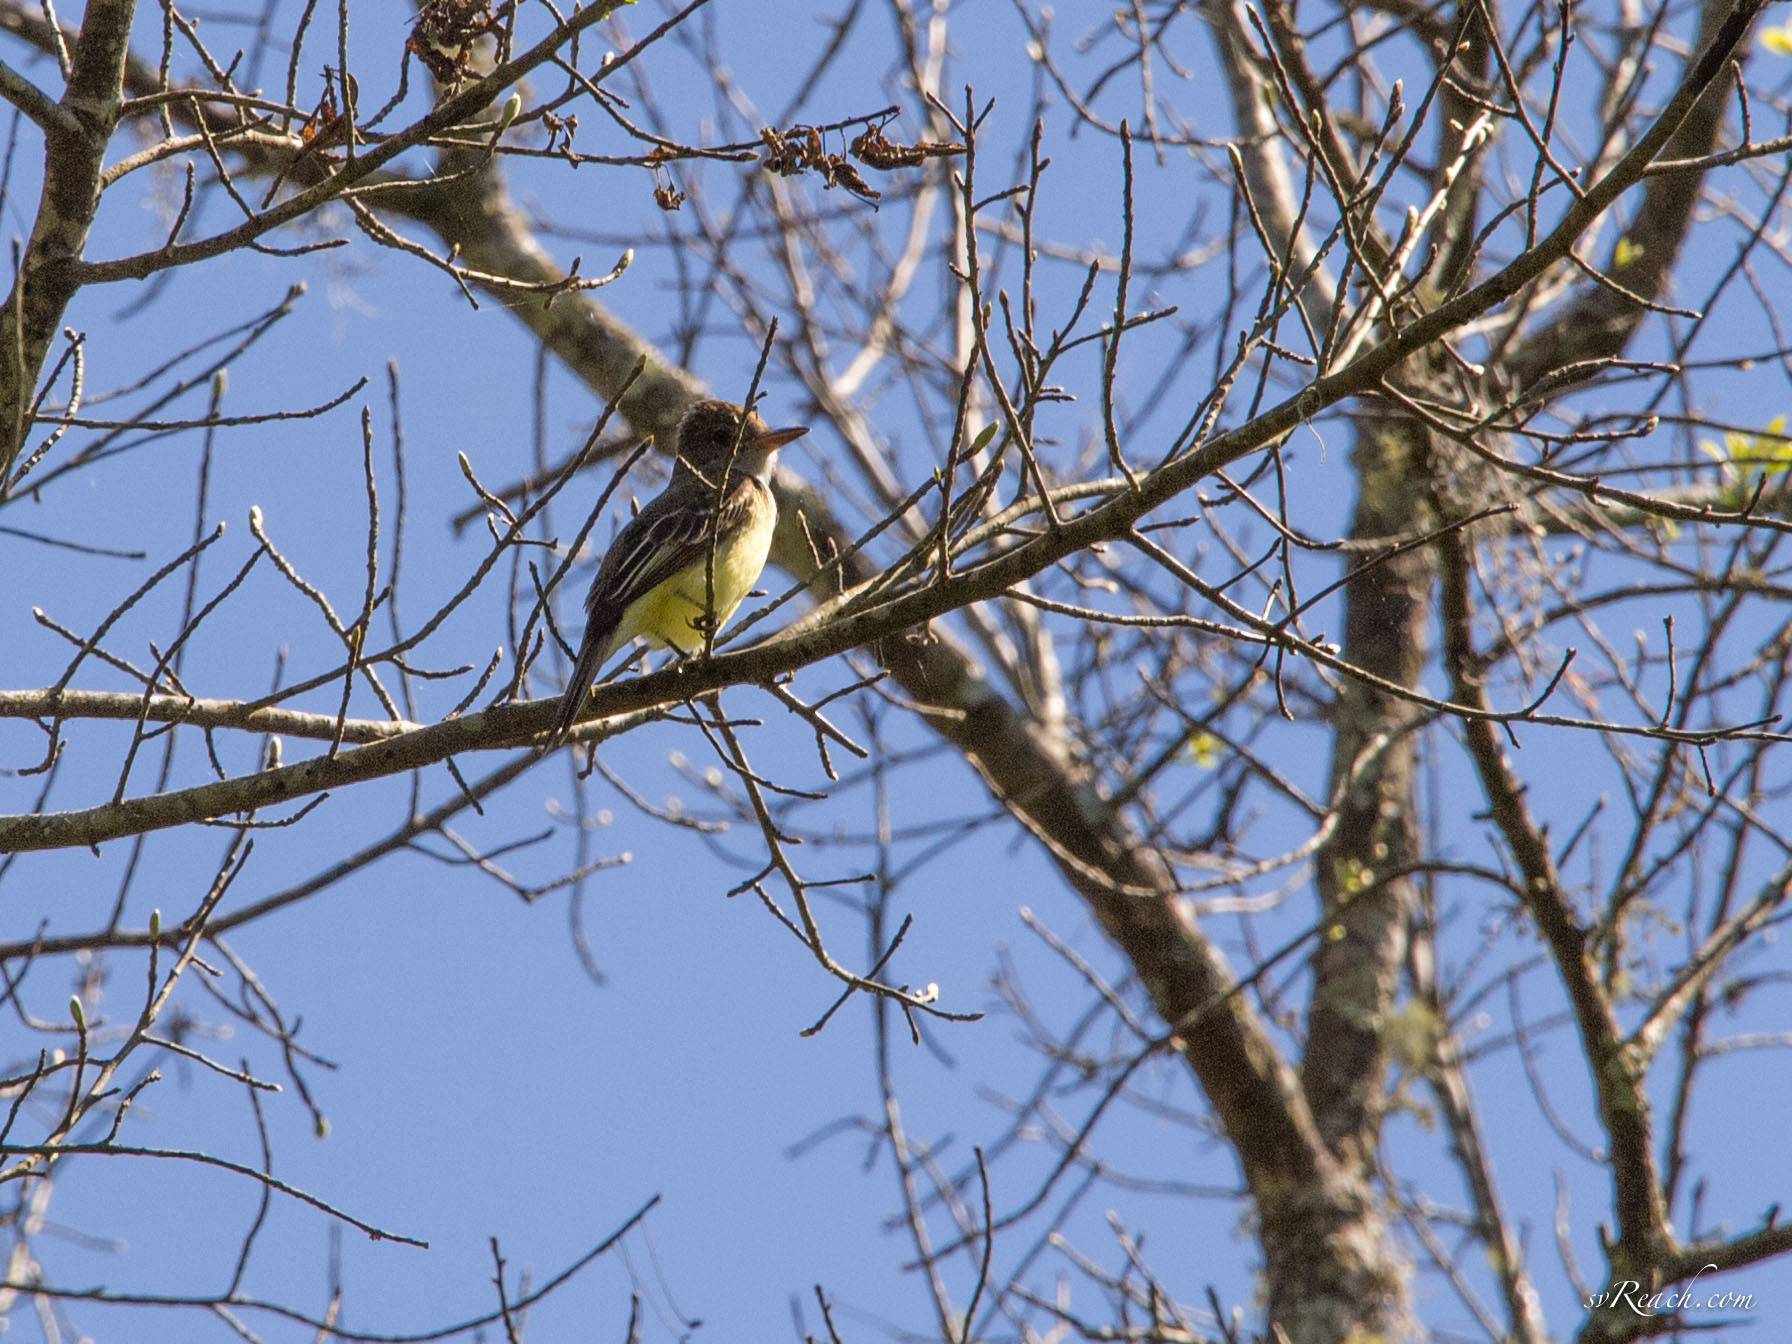 Greater crested flycatcher